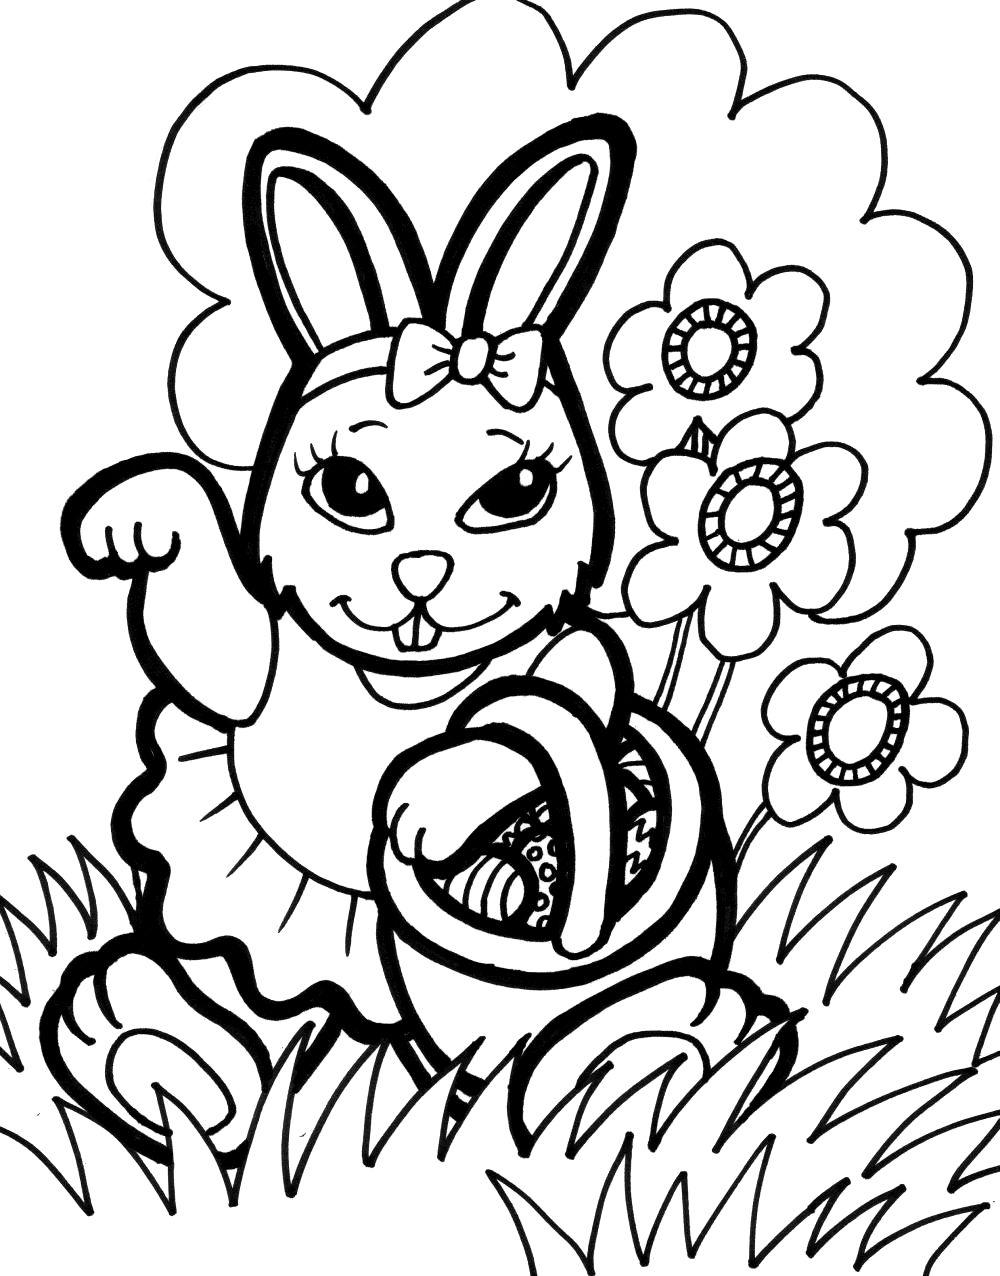 Bunny coloring pages best coloring pages for kids for Coloring pages online